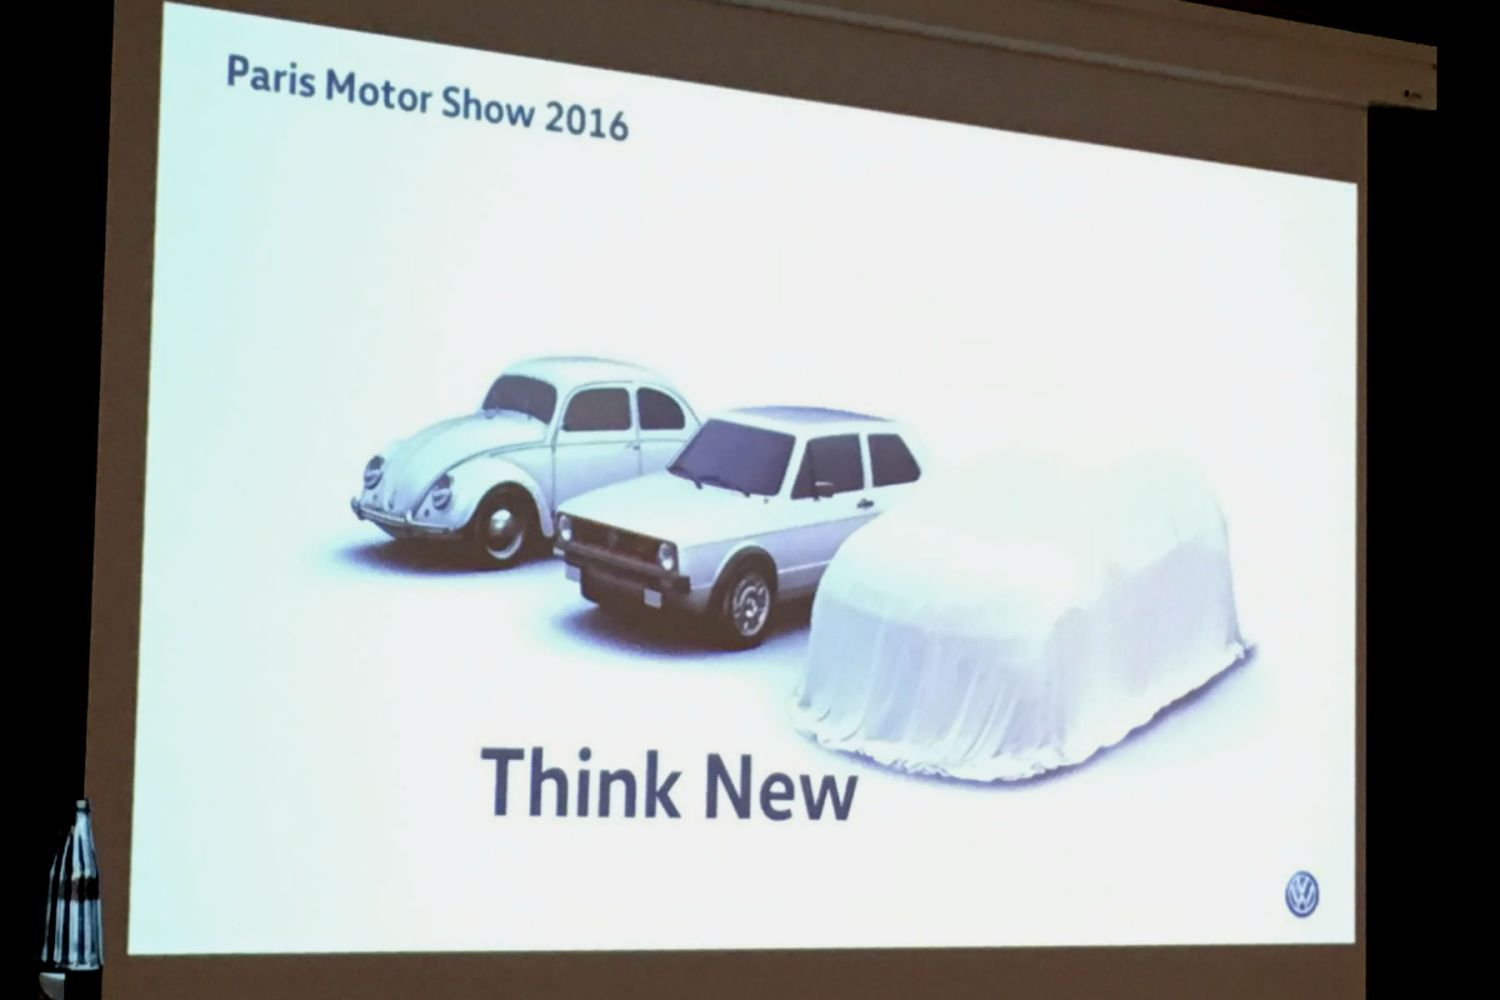 Volkswagen urges customers to 'think new' with its Paris Motor Show concept